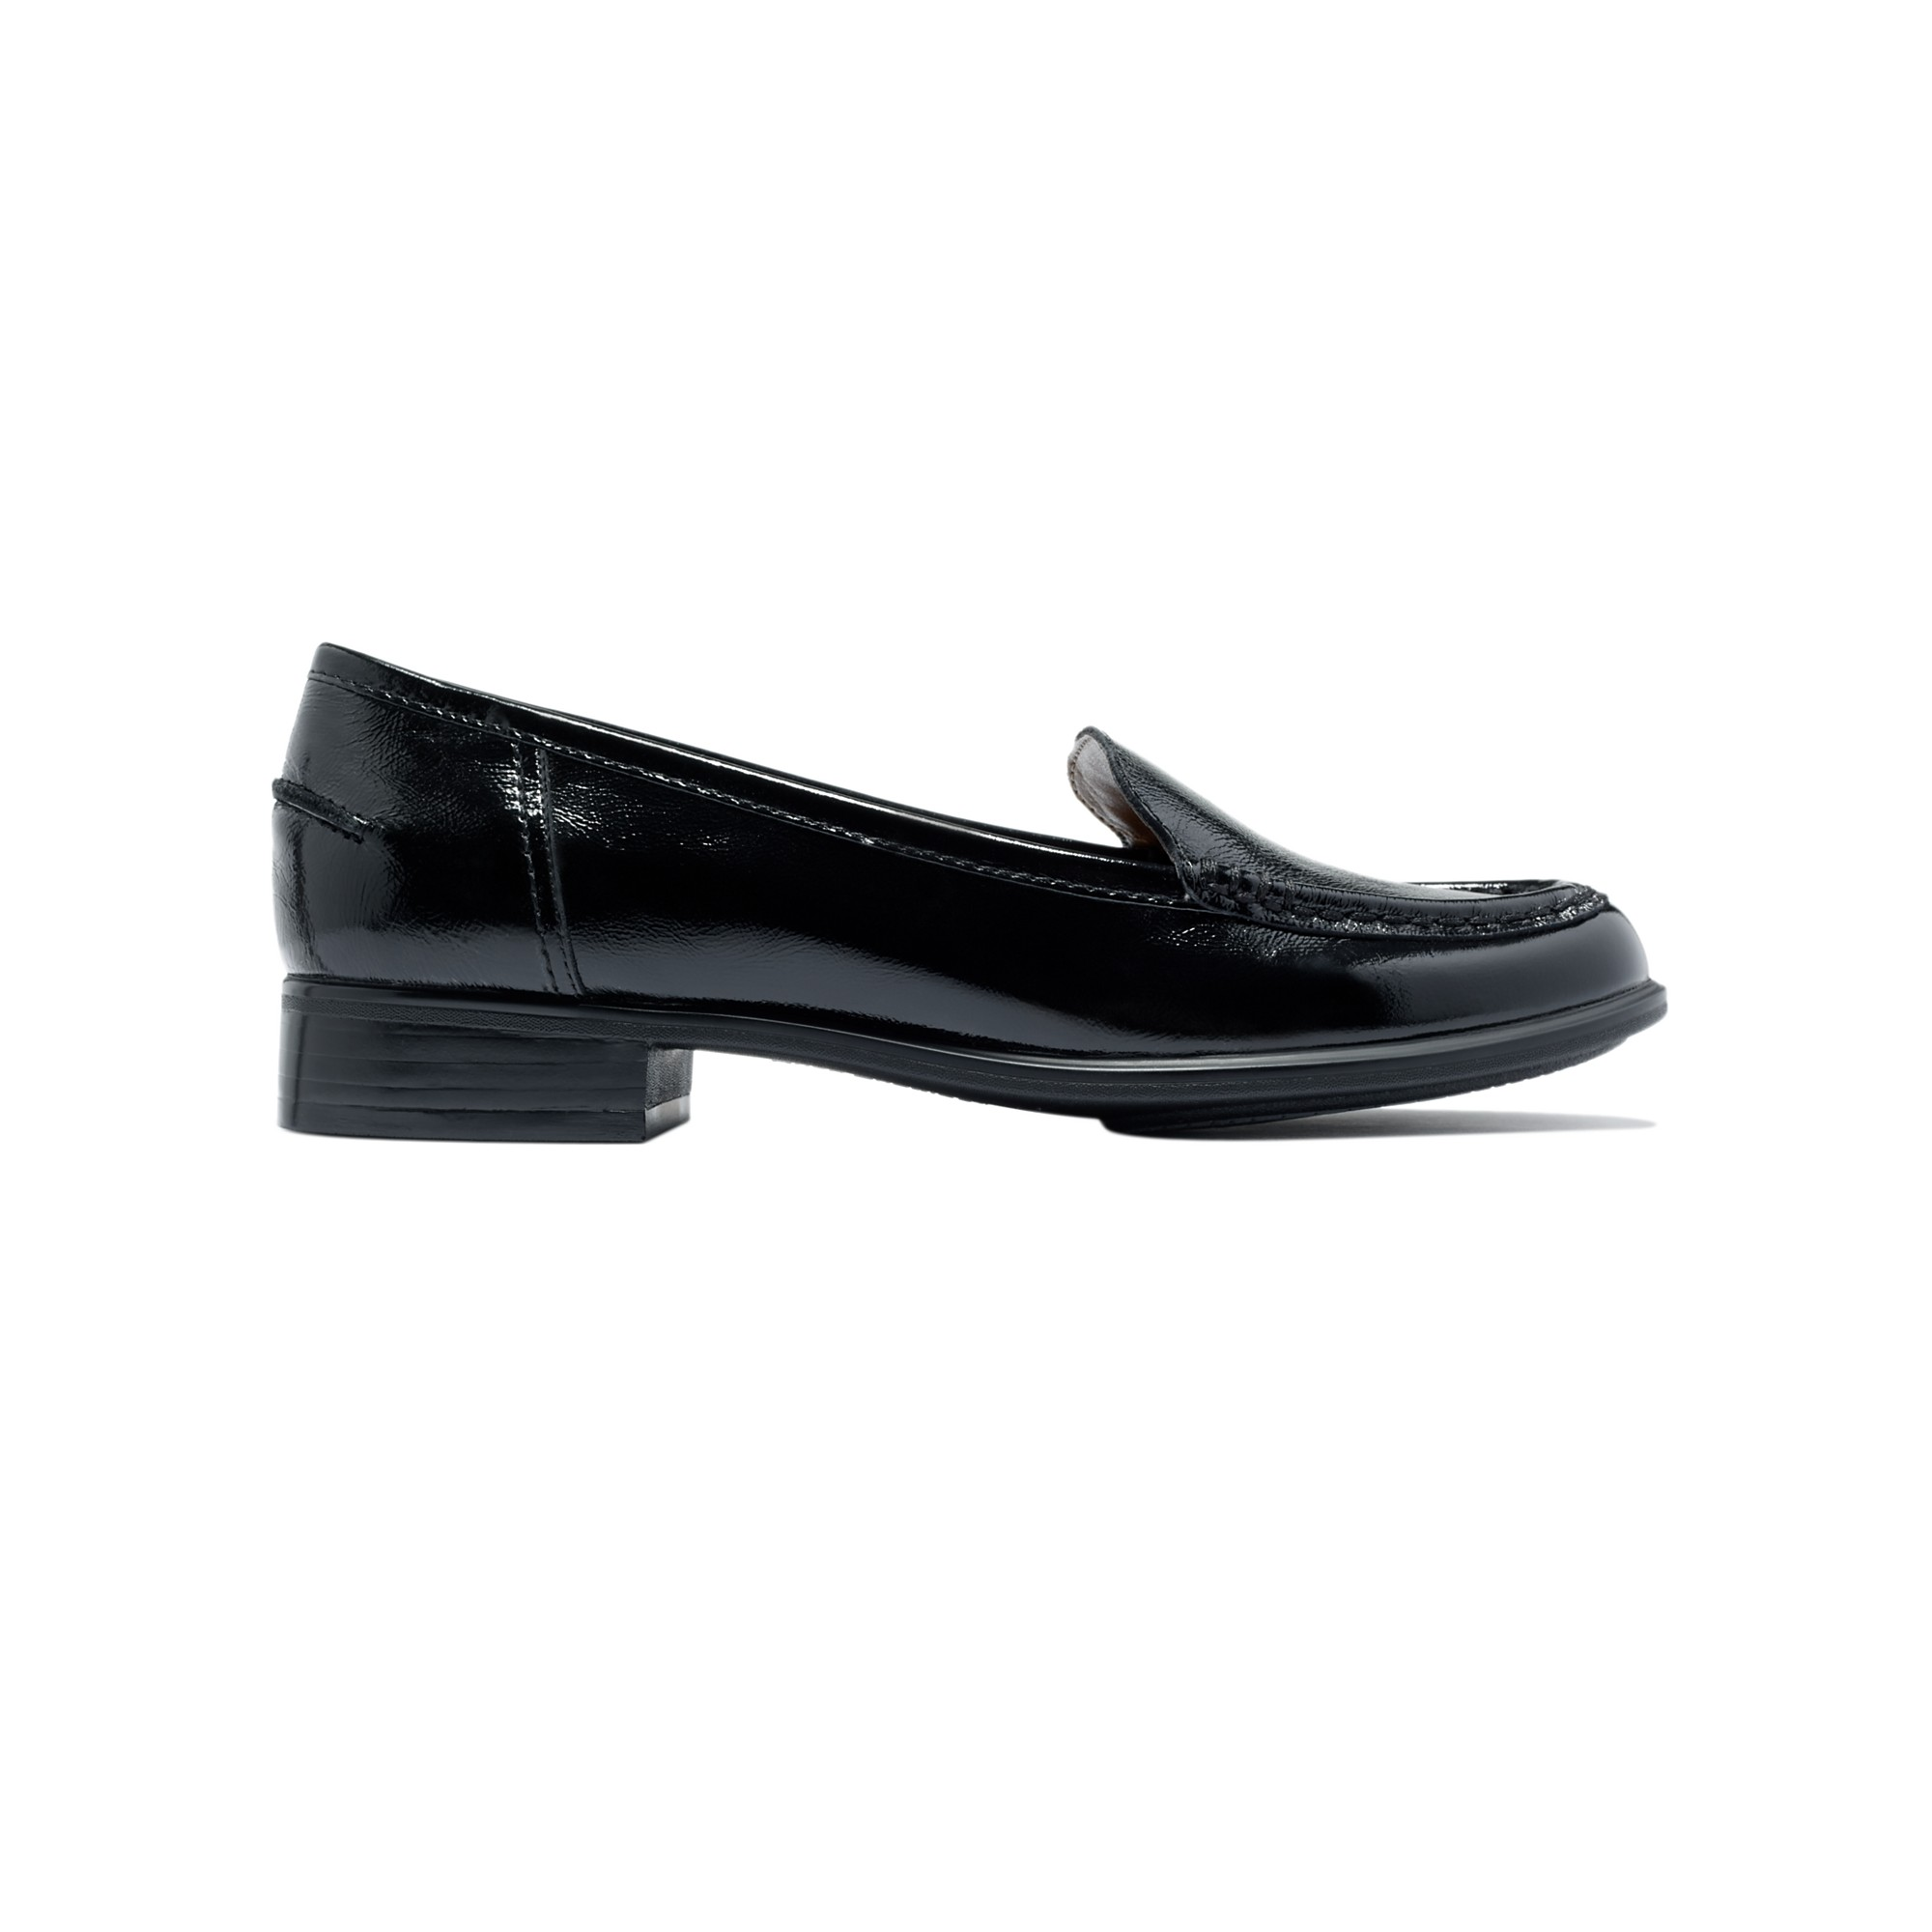 180d839452f Lyst - Hush Puppies Blondelle Loafer Flats in Black